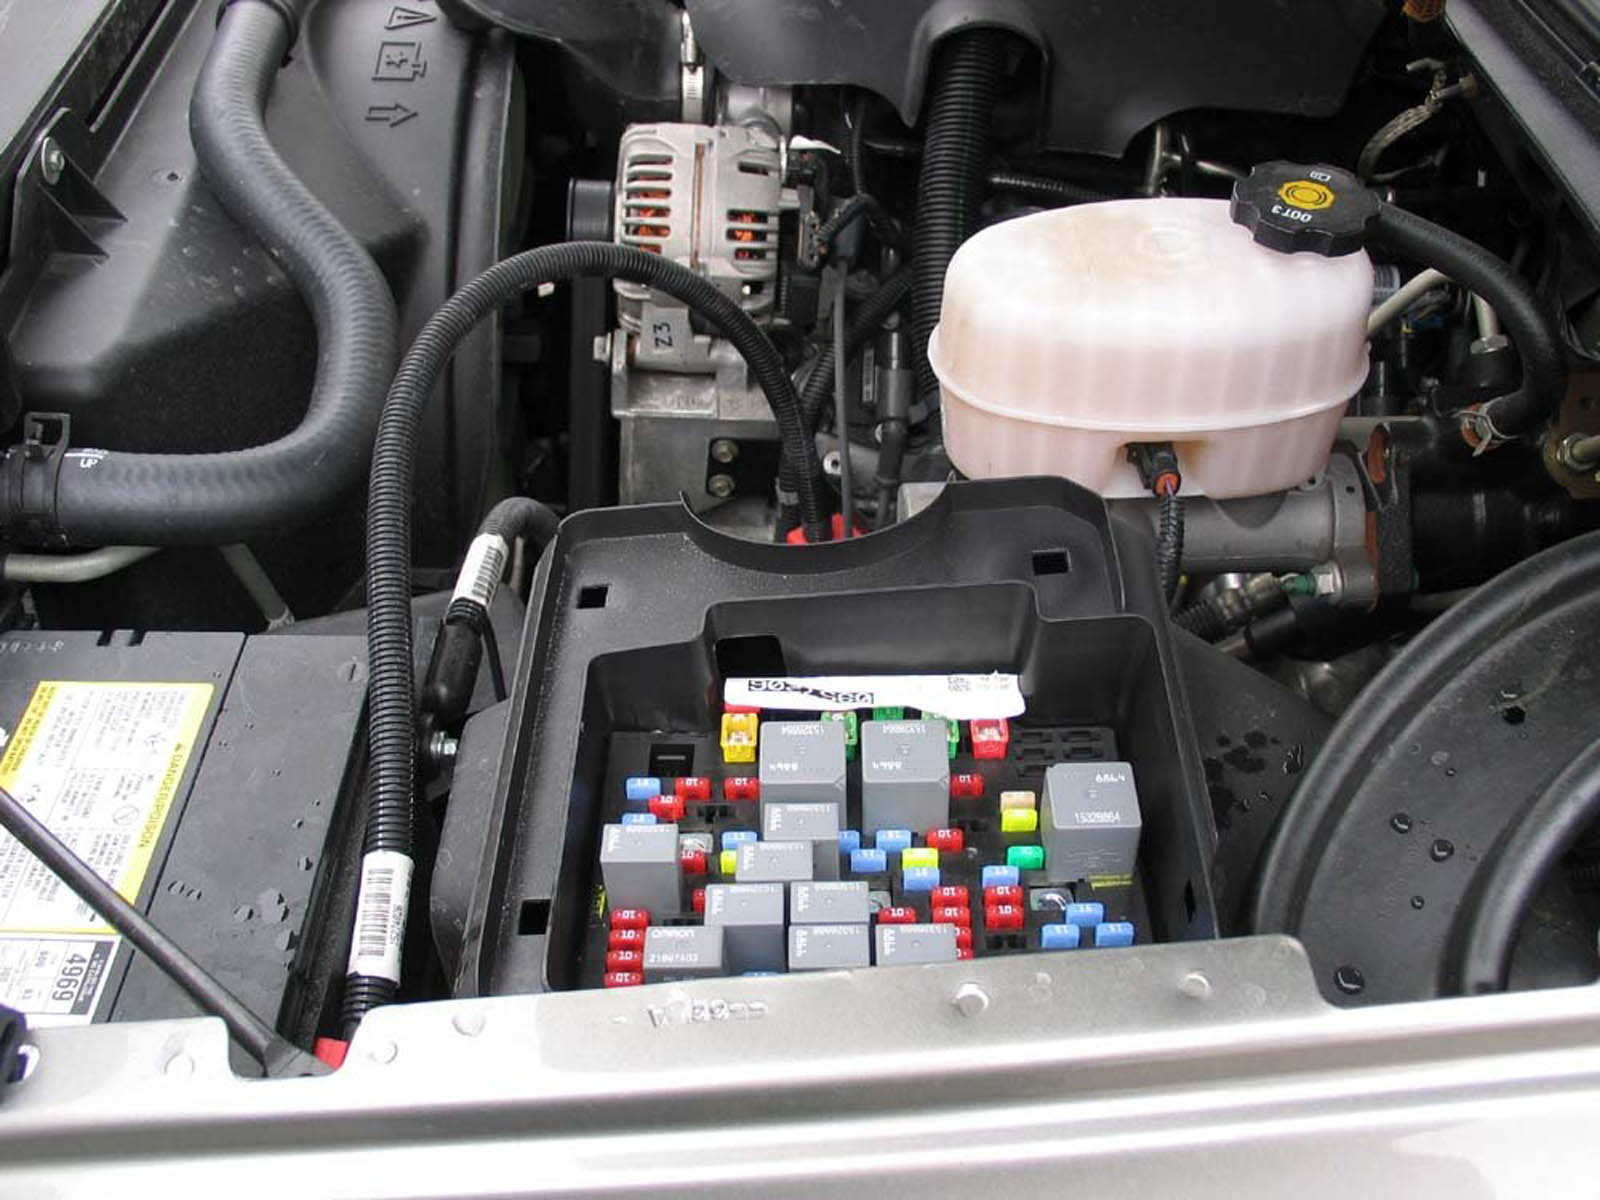 MMMay 27 Fuse Box 04 69845 chevrolet silverado gmt800 1999 2006 fuse box diagram chevroletforum under hood fuse box 2012 chevy silverado at bakdesigns.co